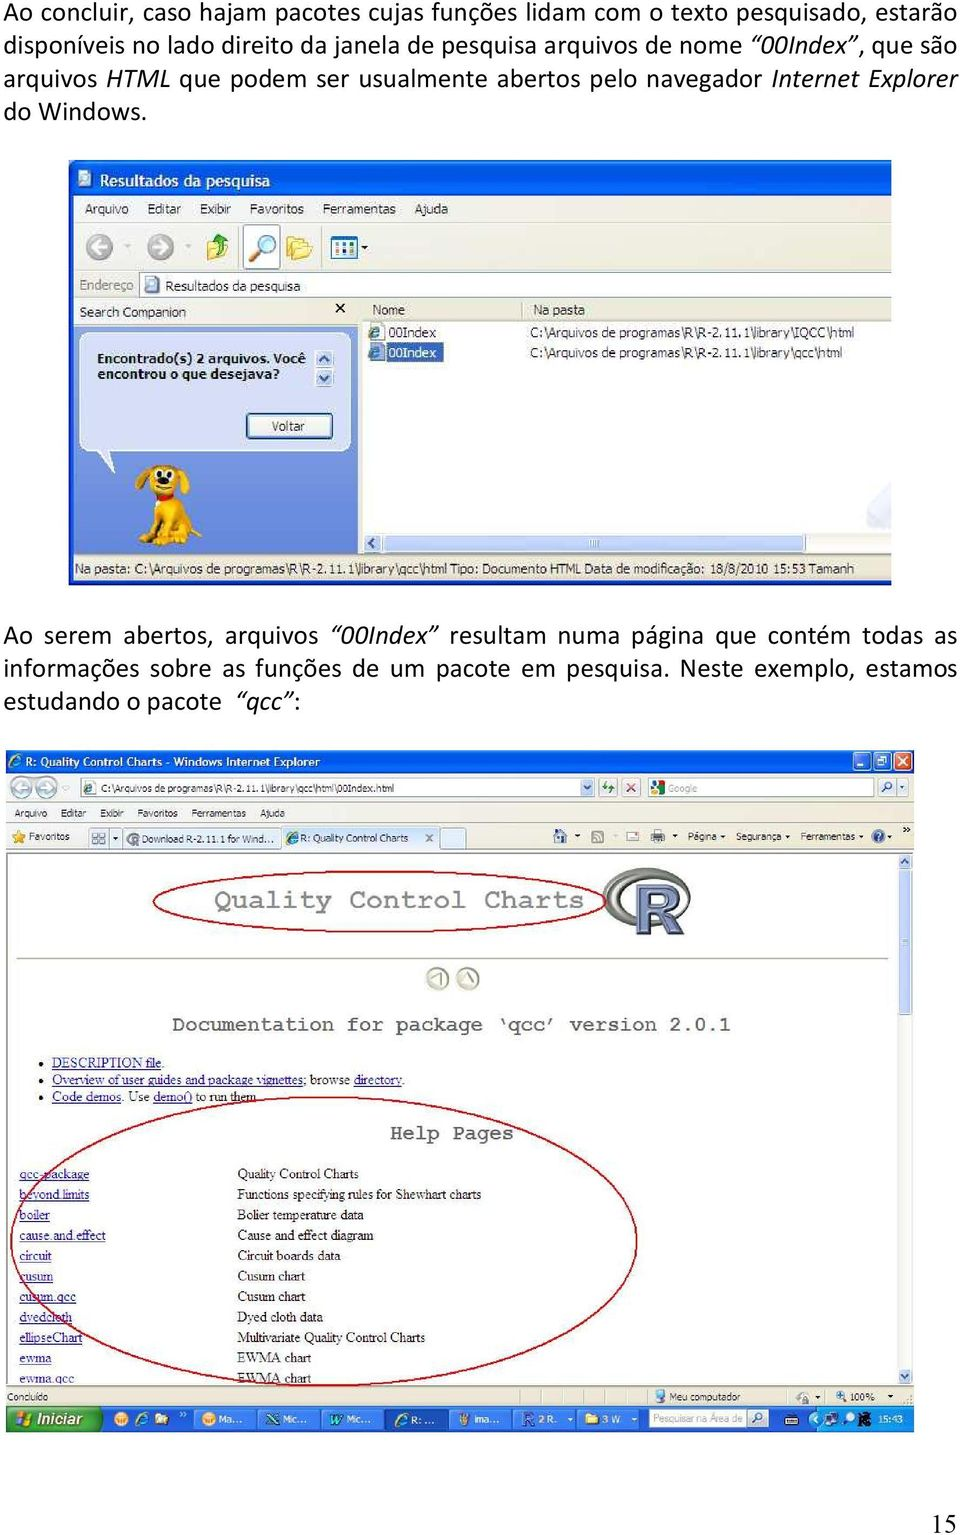 pelo navegador Internet Explorer do Windows.